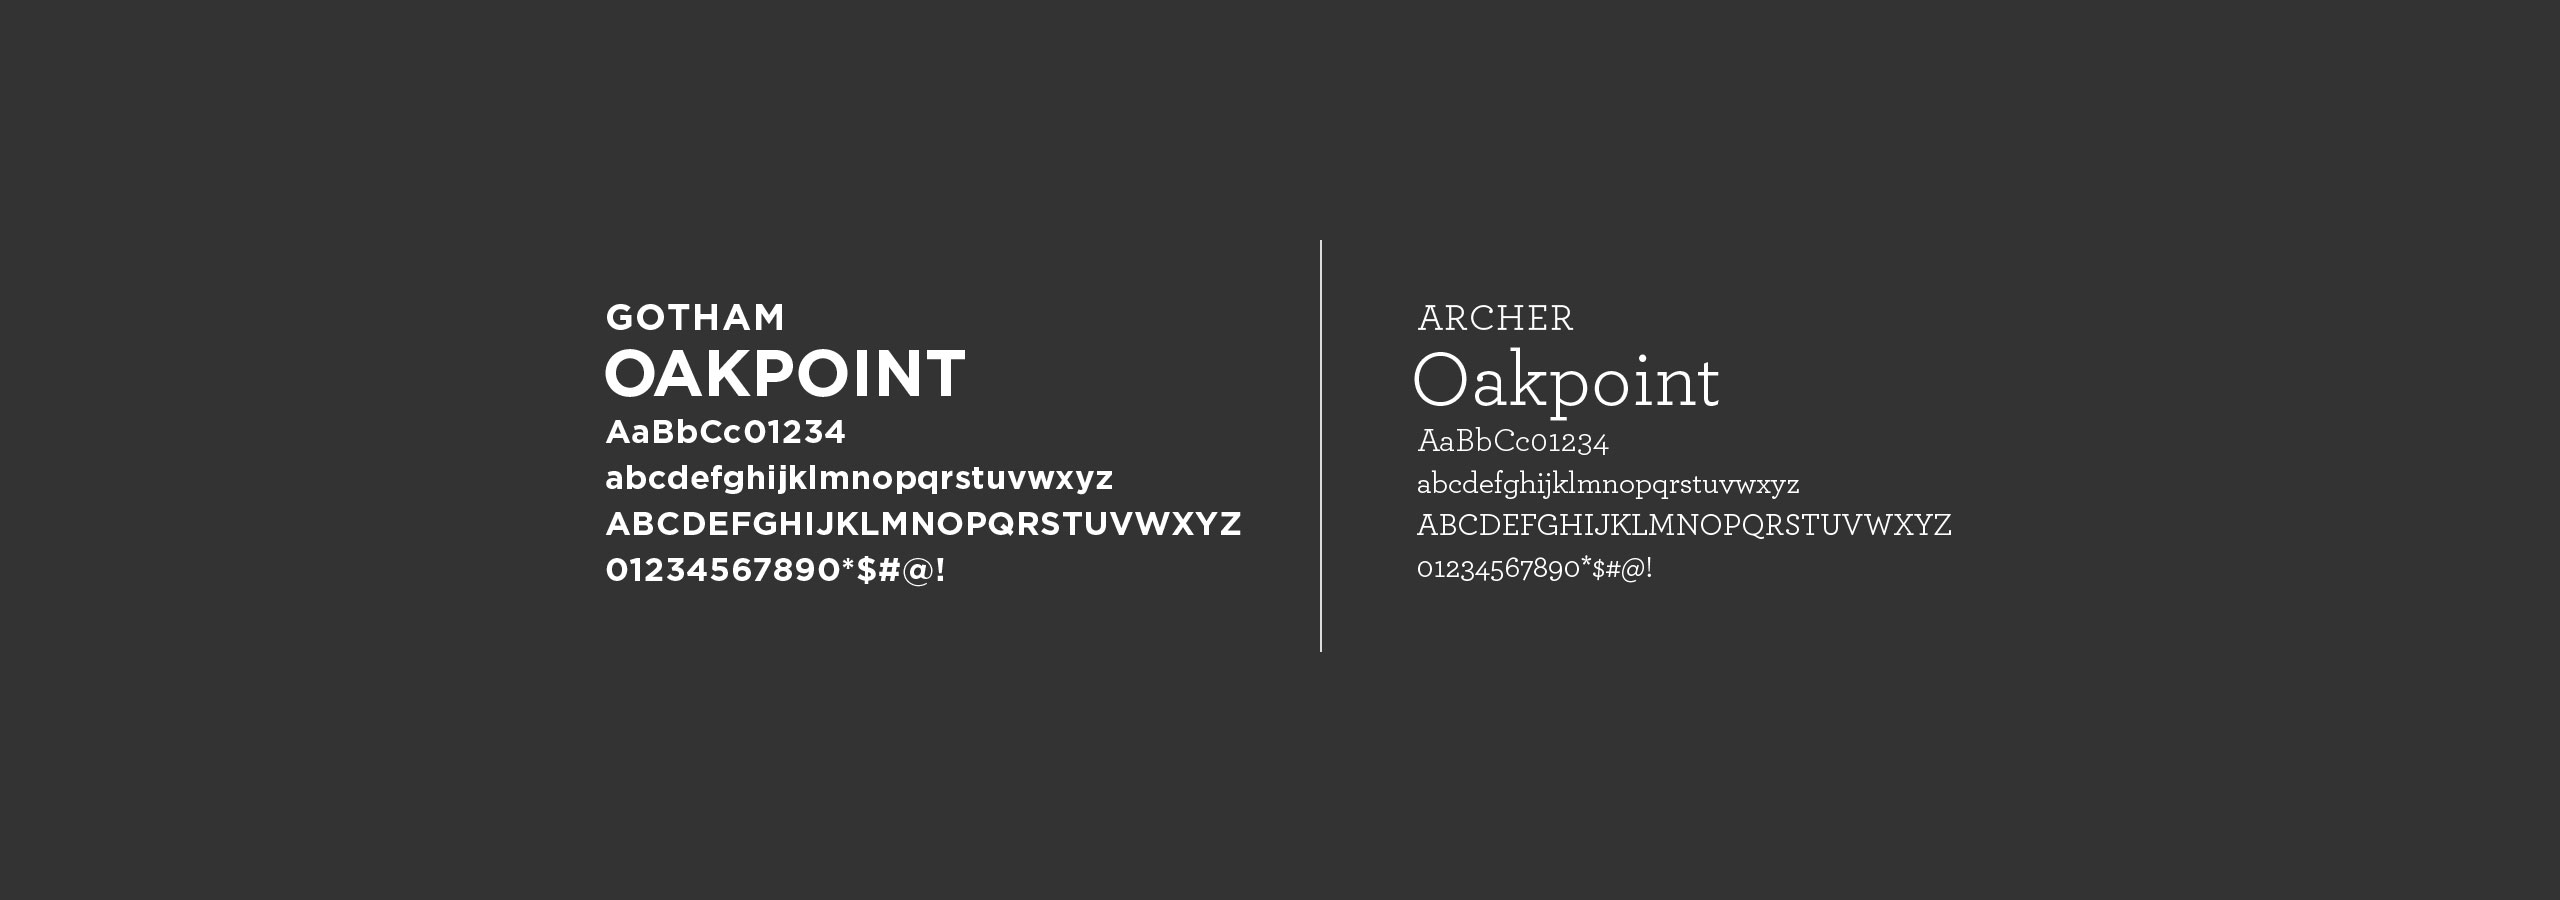 oakpoint-asset-management-typography